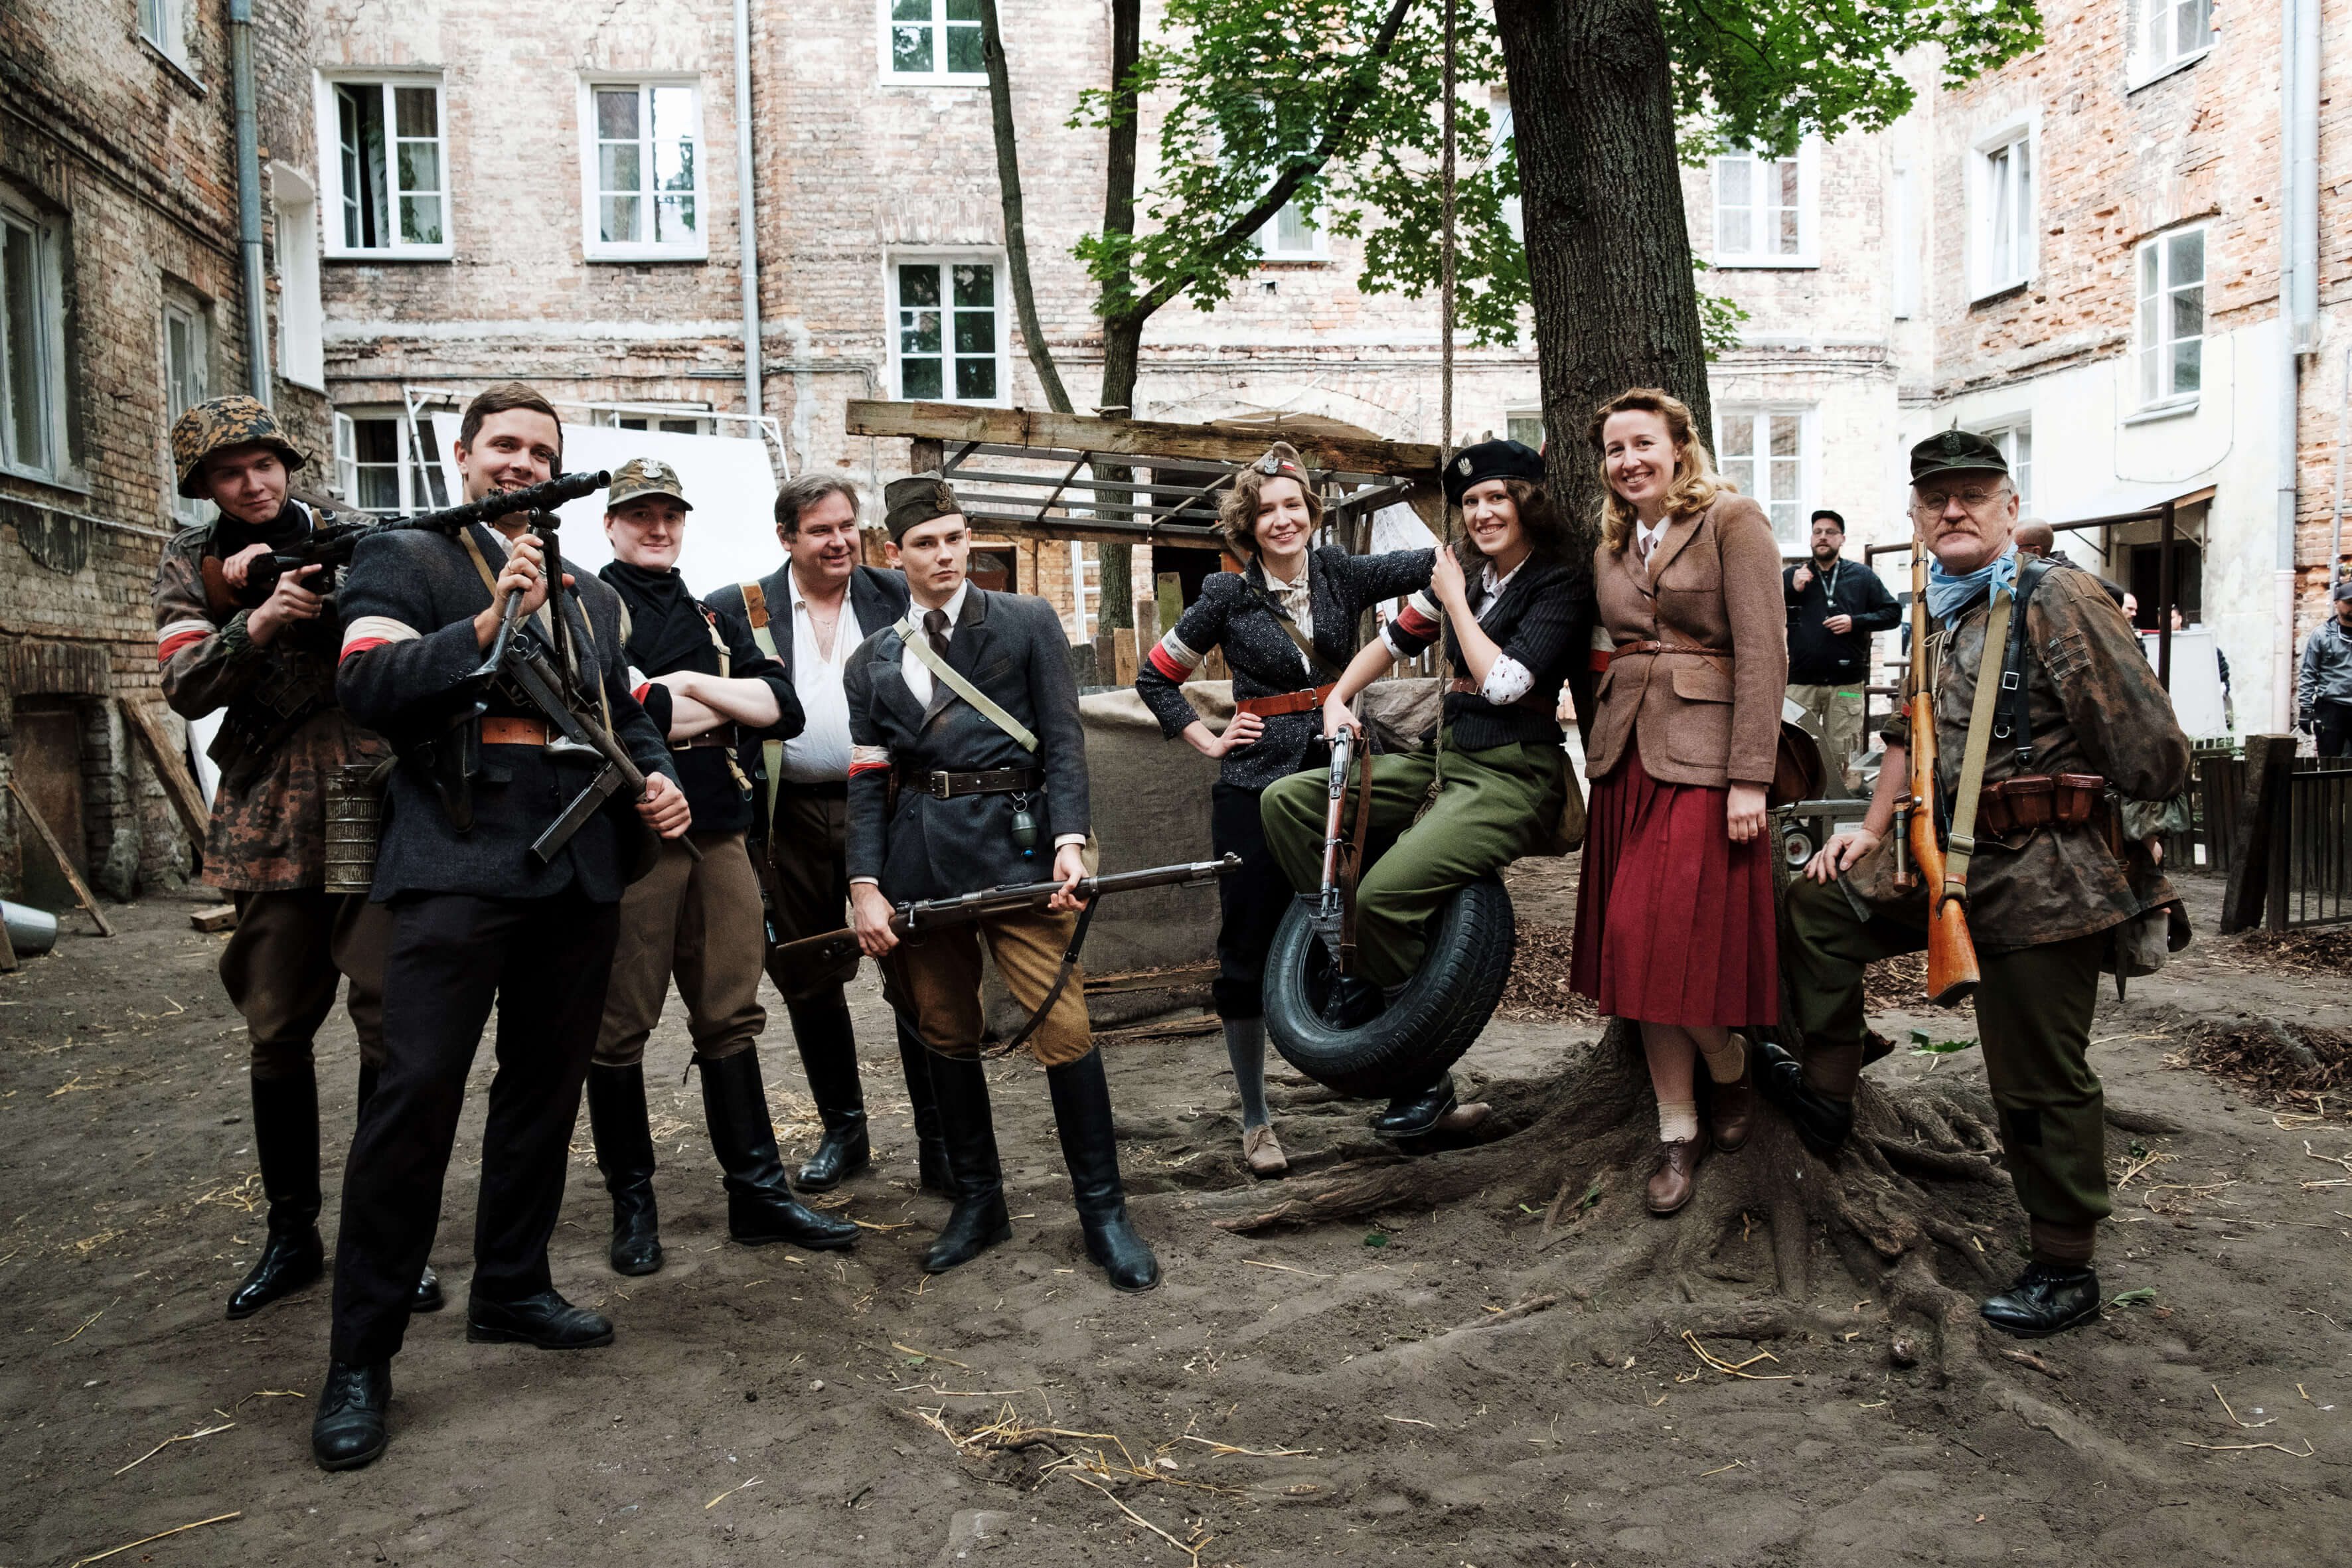 Warsaw Uprising – Campaign